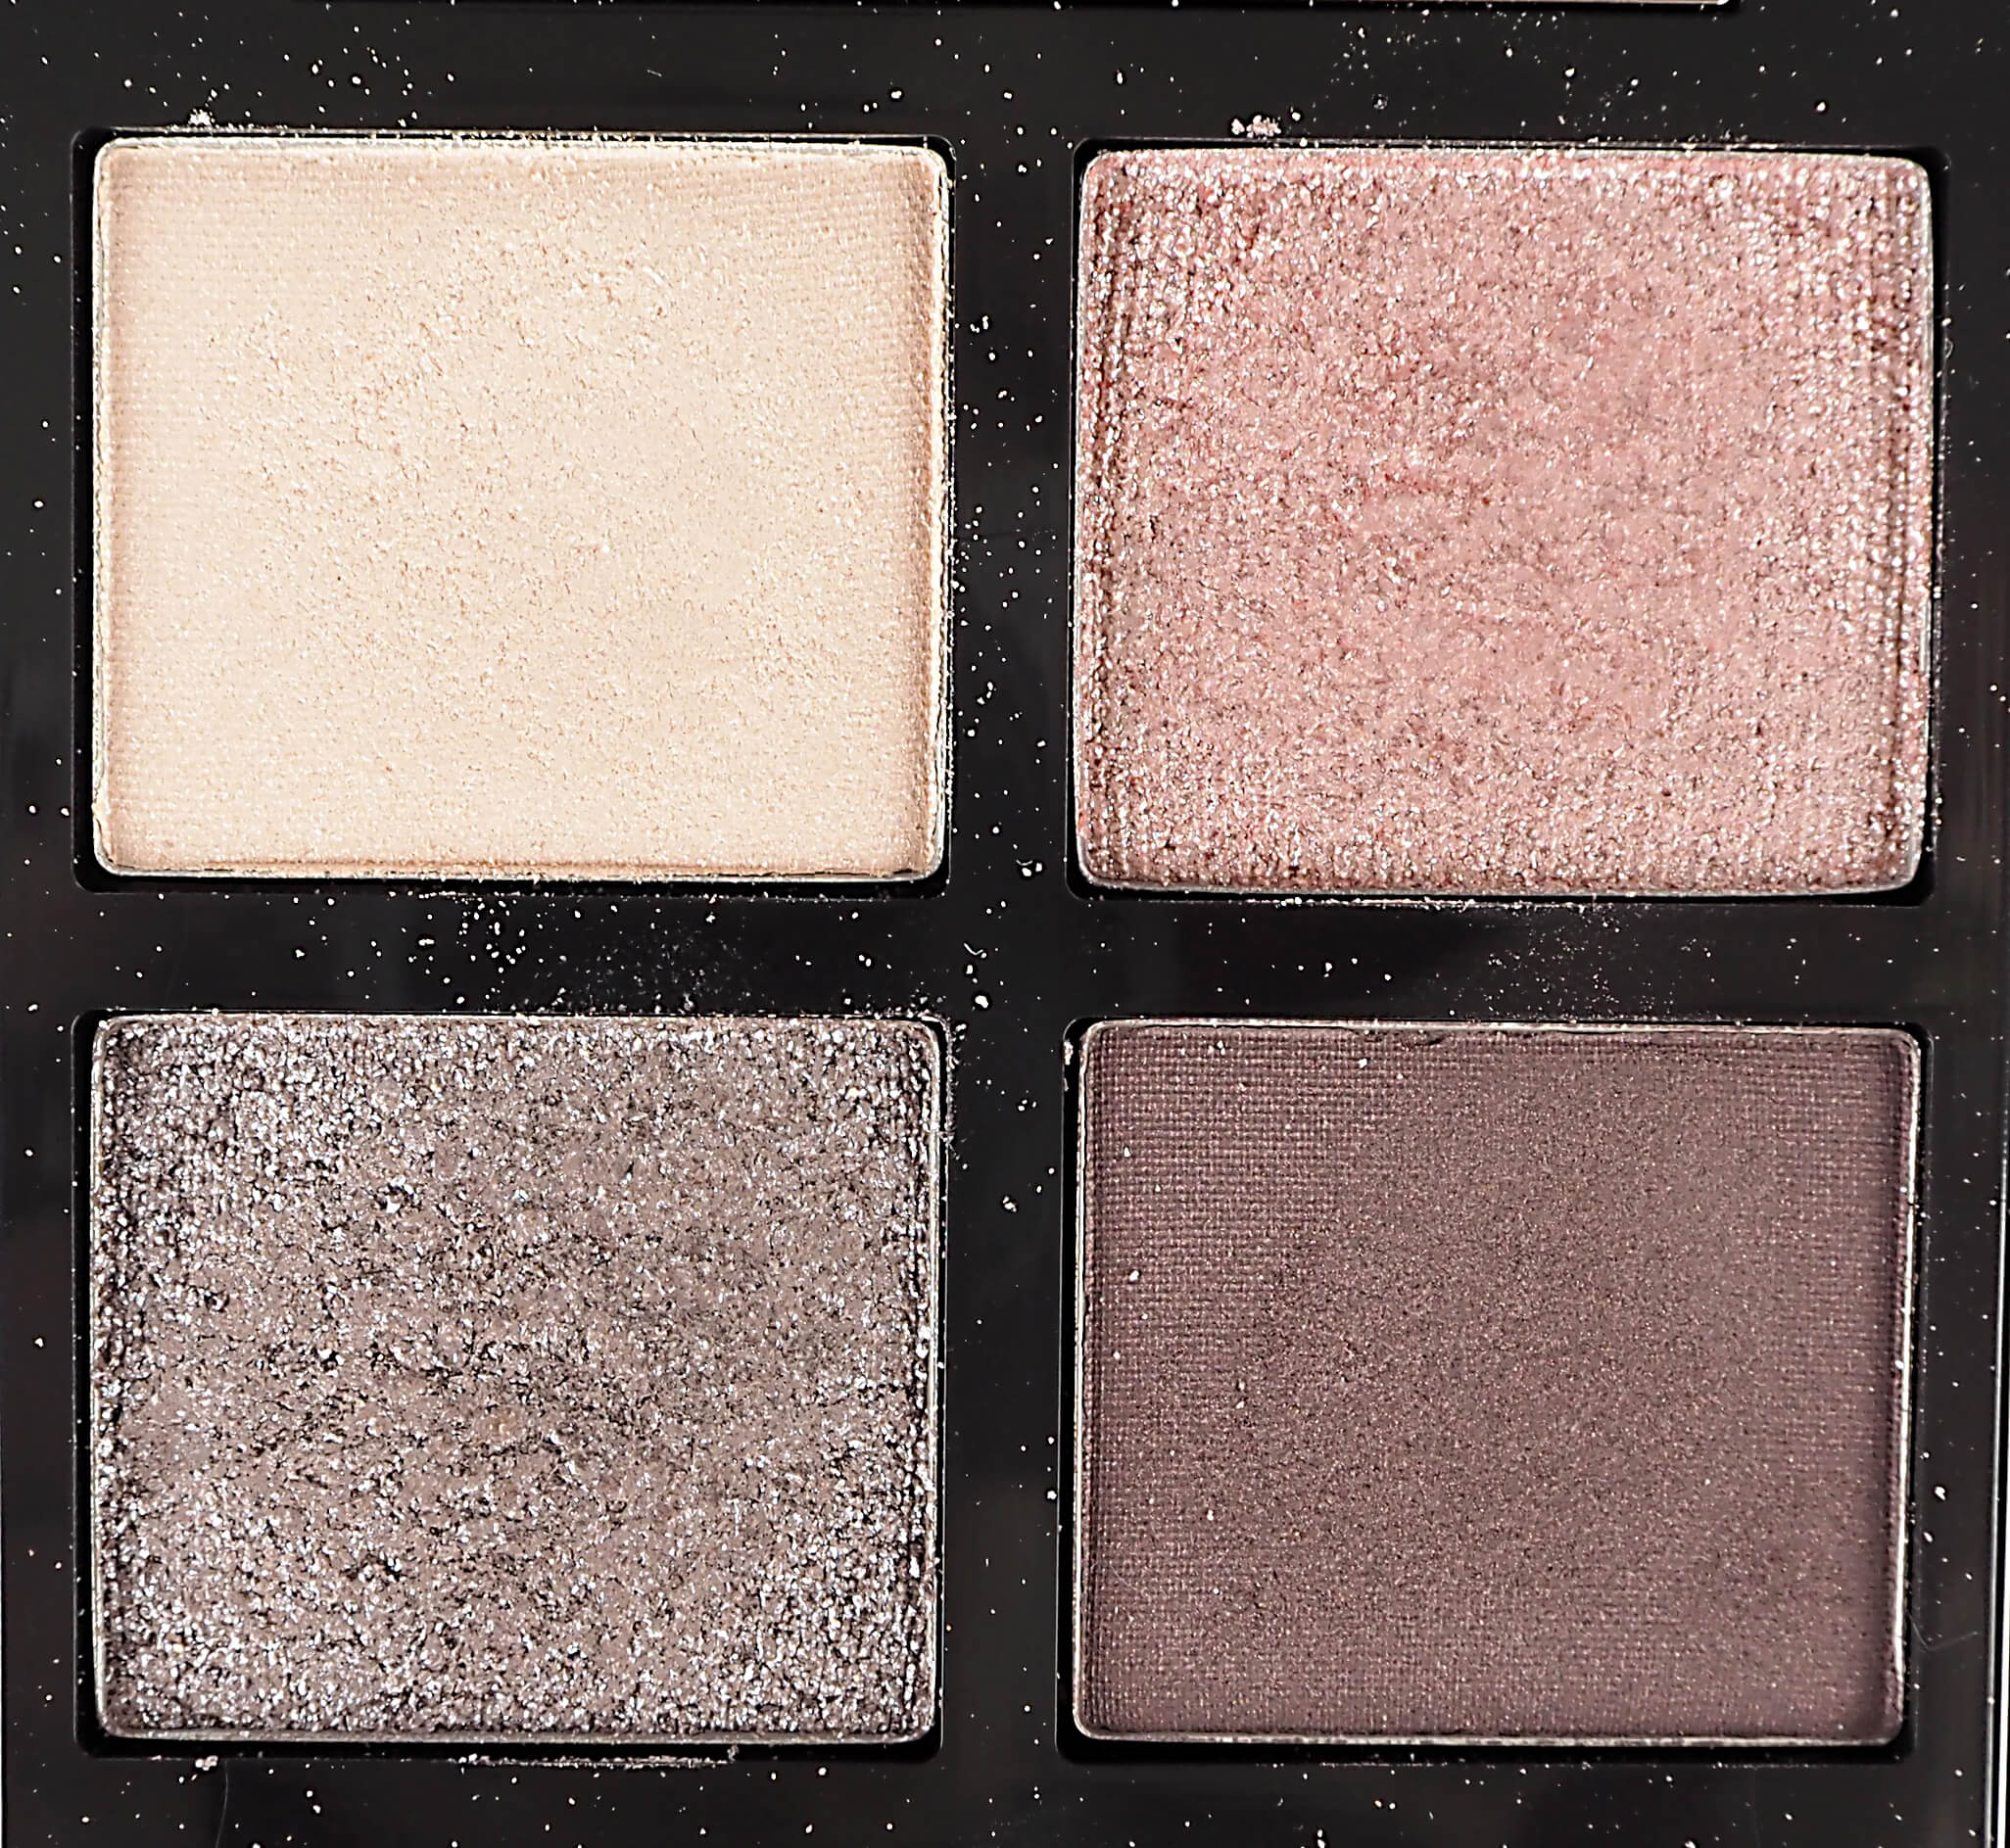 TOM FORD SEDUCTIVE ROSE Eye Color Quad